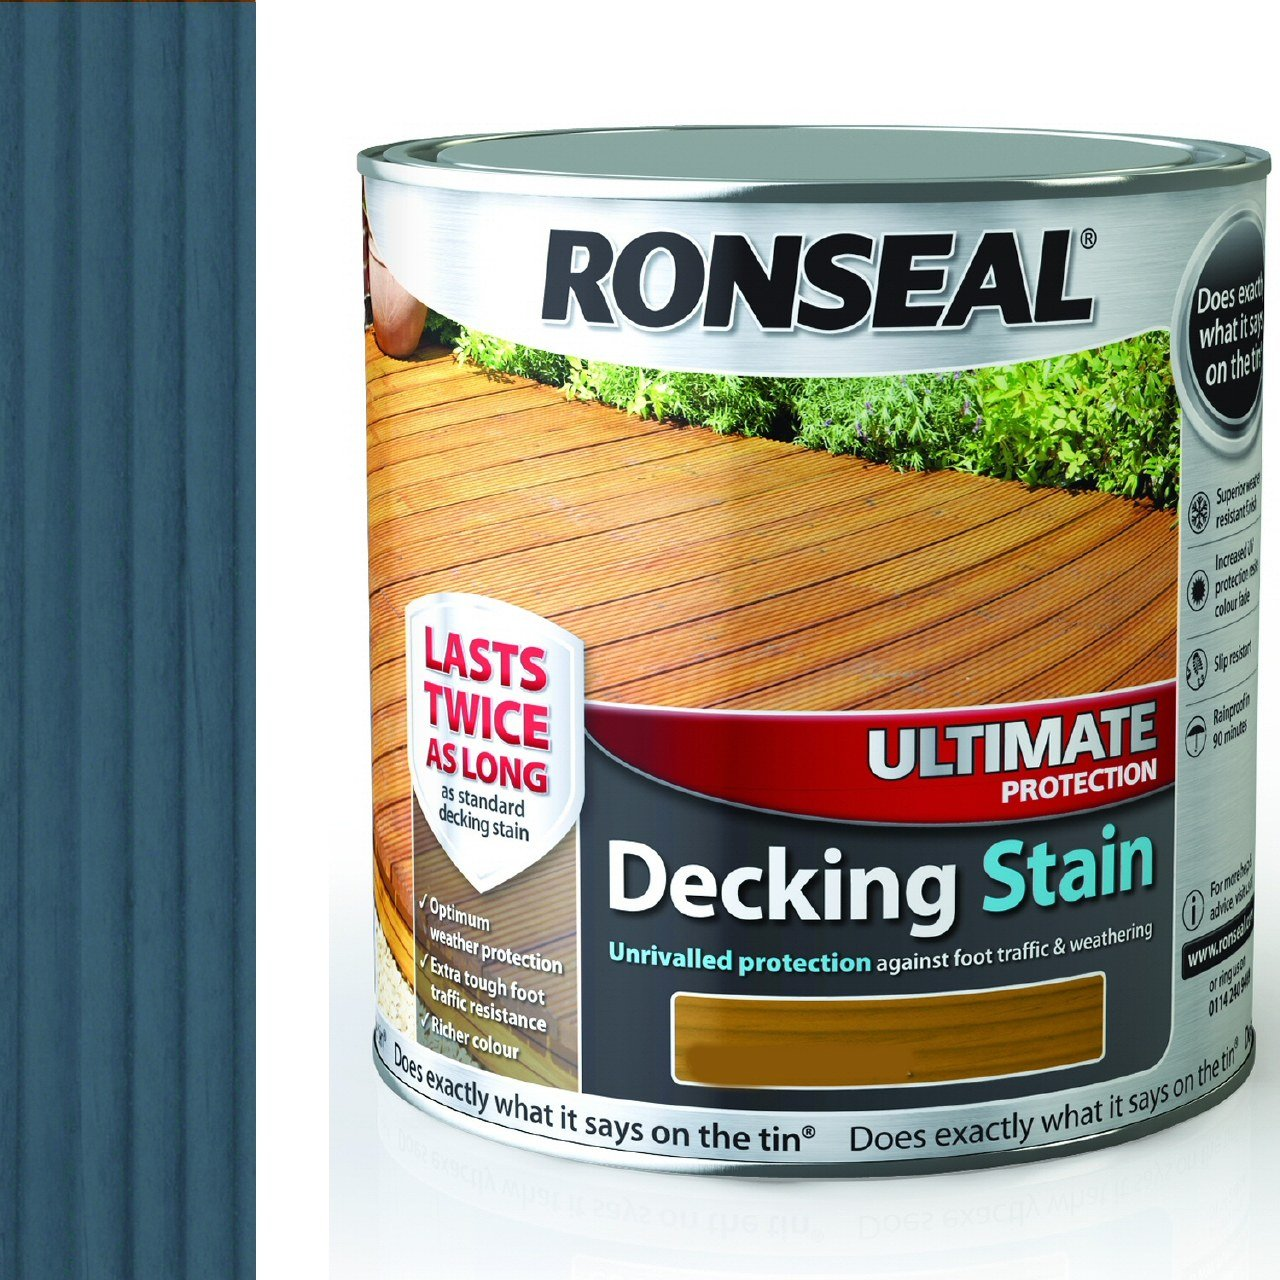 Ronseal rsludss25l 25l ultimate protection decking stain slate ronseal rsludss25l 25l ultimate protection decking stain slate amazon diy tools baanklon Image collections